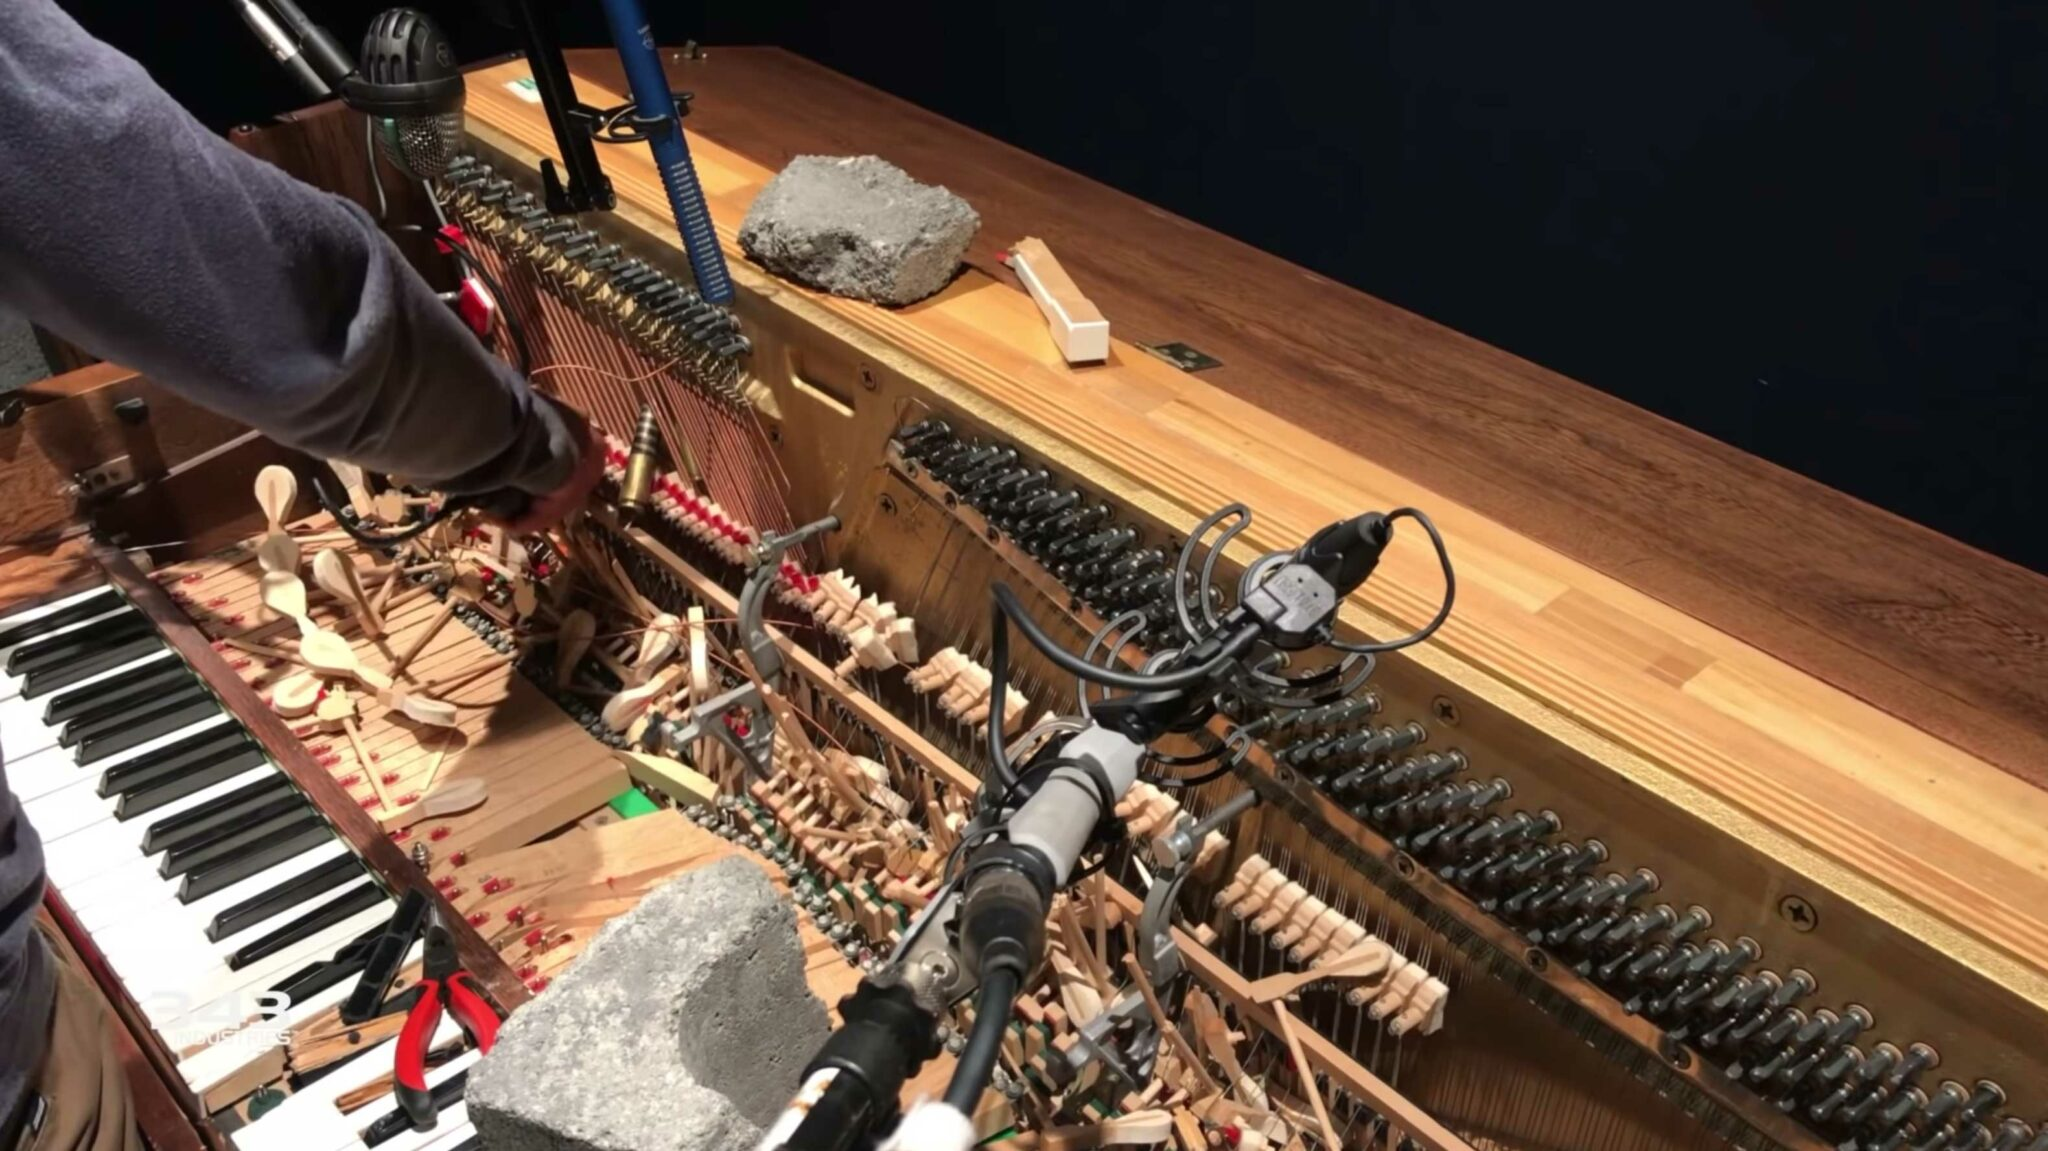 Watch Halo developers destroy a piano to create incredibly visceral sounds